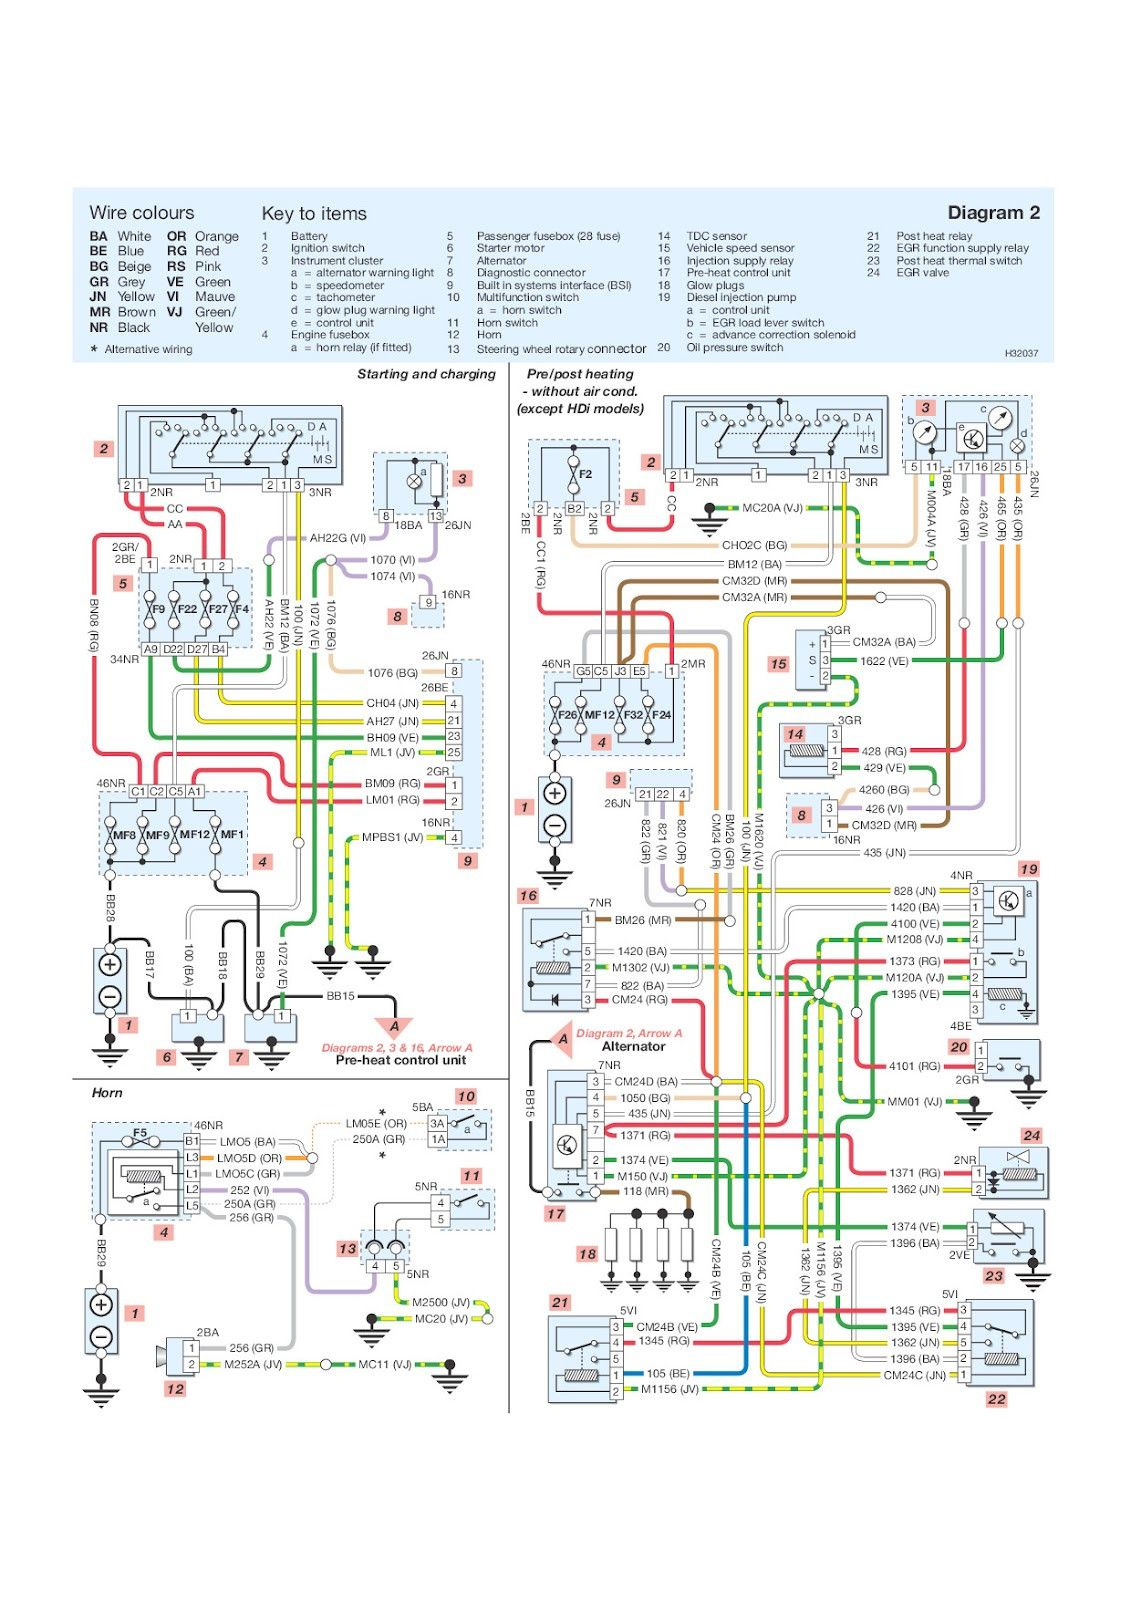 medium resolution of ferrari wiring diagram free download schematic